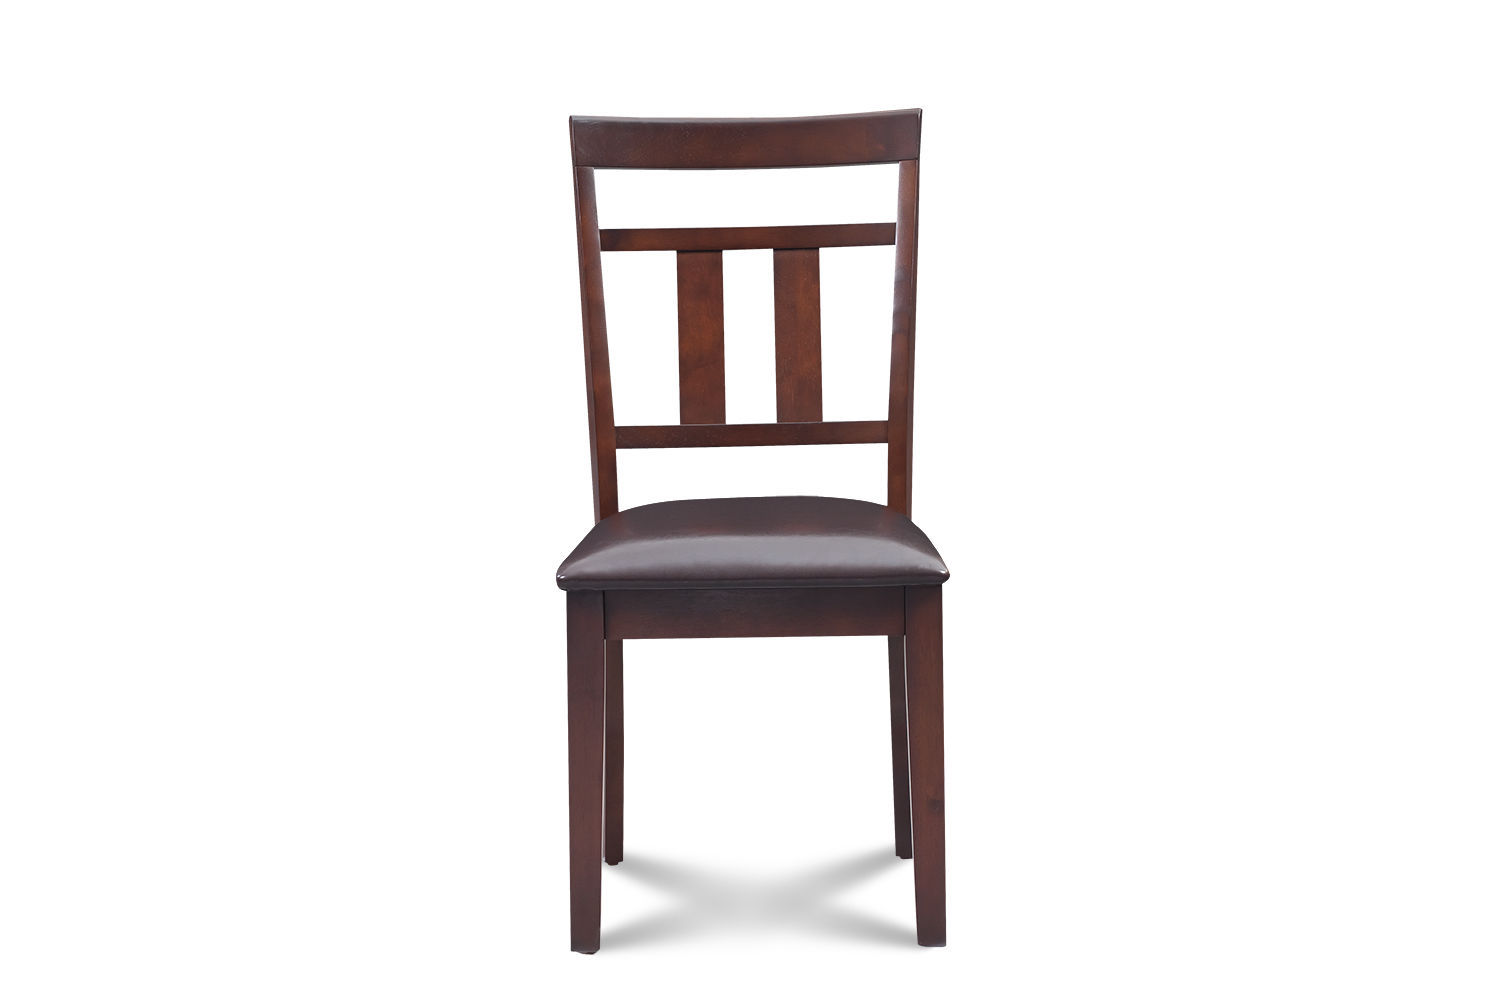 SET OF 4 KITCHEN DINING SIDE CHAIRS w/ FAUX SEATS IN MAHOGANY FINISH